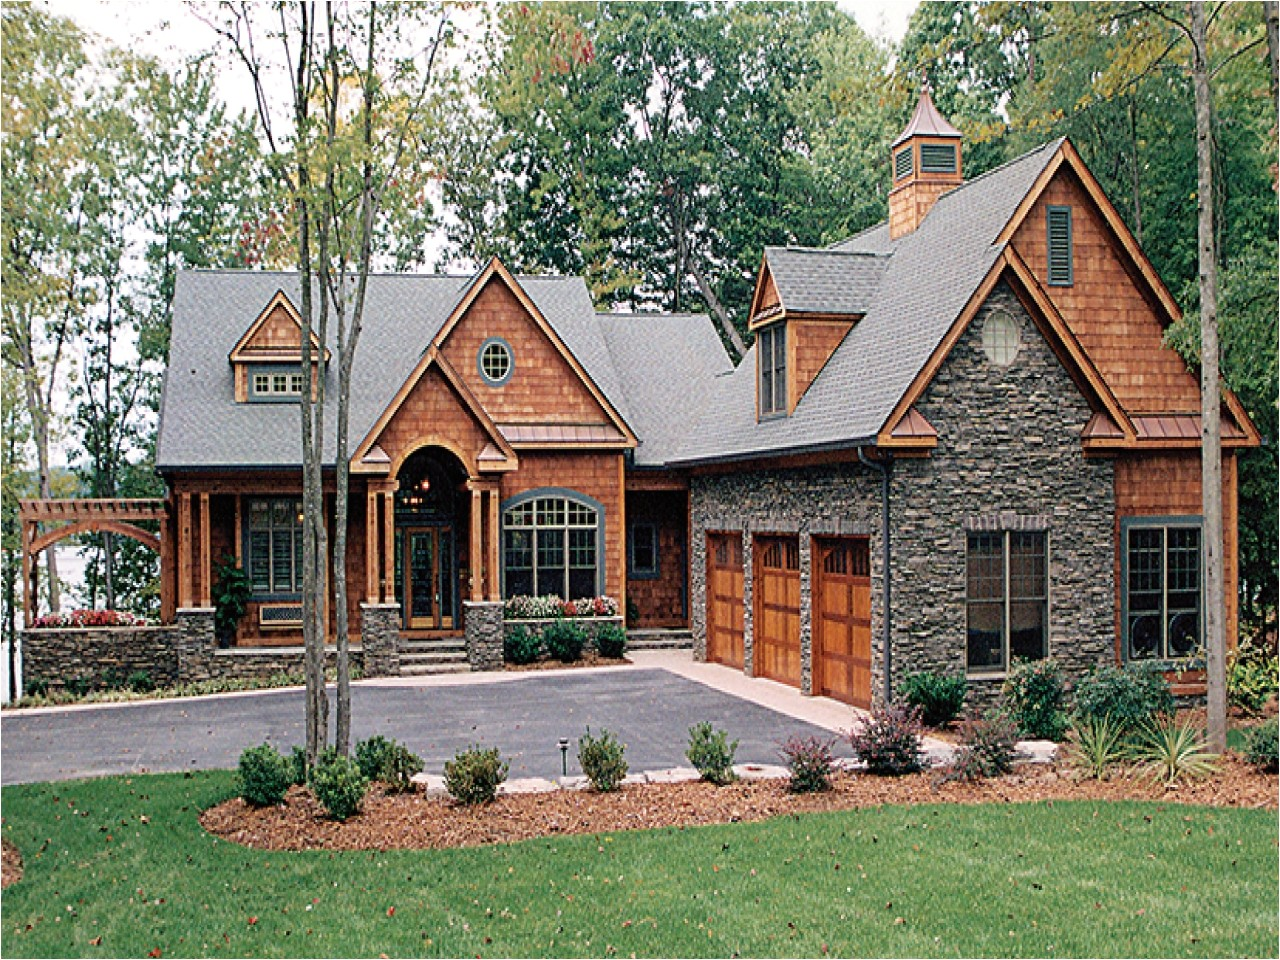 Walkout Basement House Plans On Lake Award Winning Bedroom Designs Lake House Plans with